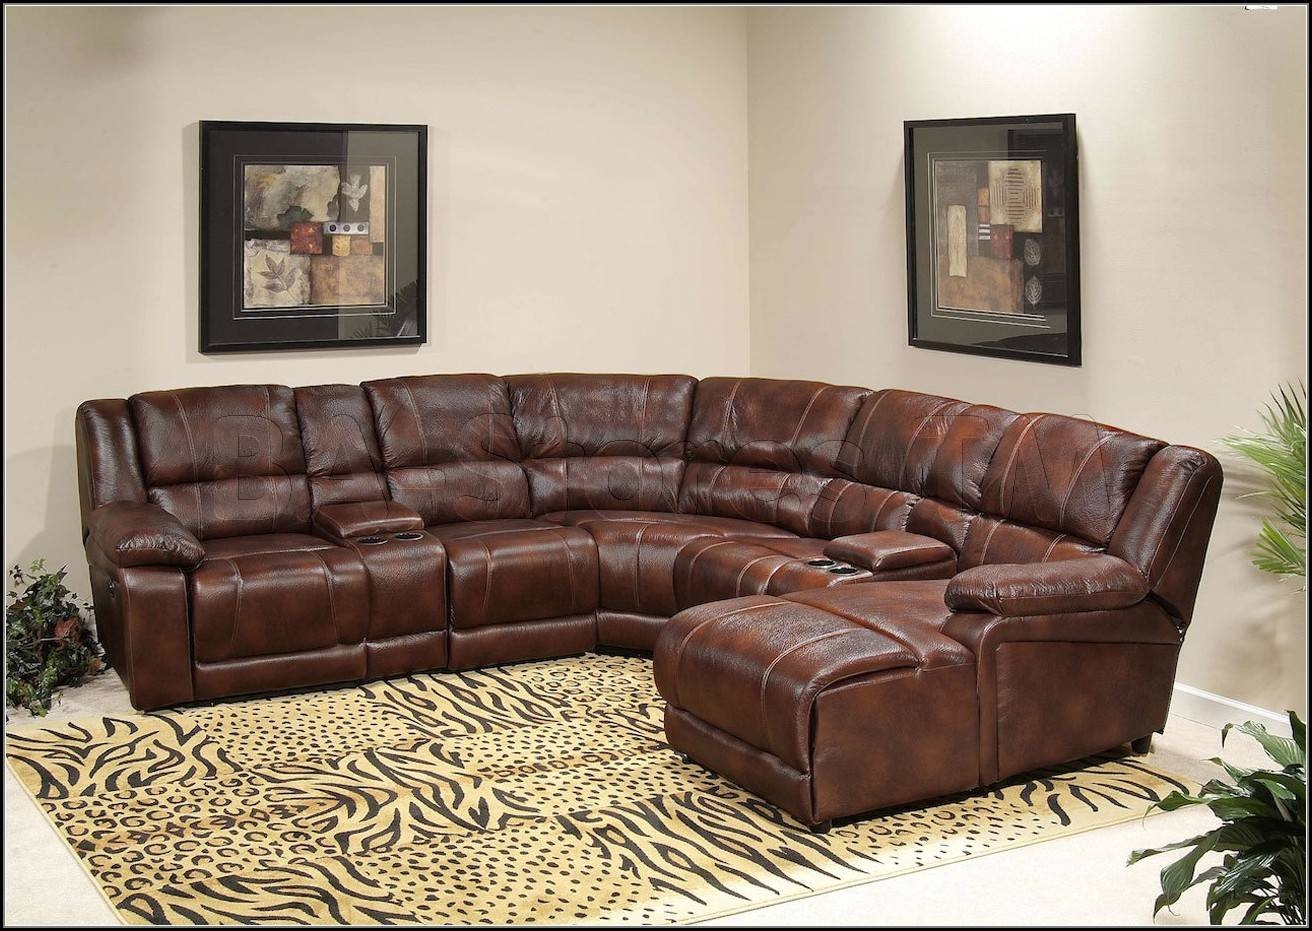 Leather Sectional Sofa With Recliners | Tehranmix Decoration Throughout Sectional Sofa Recliners (View 17 of 30)